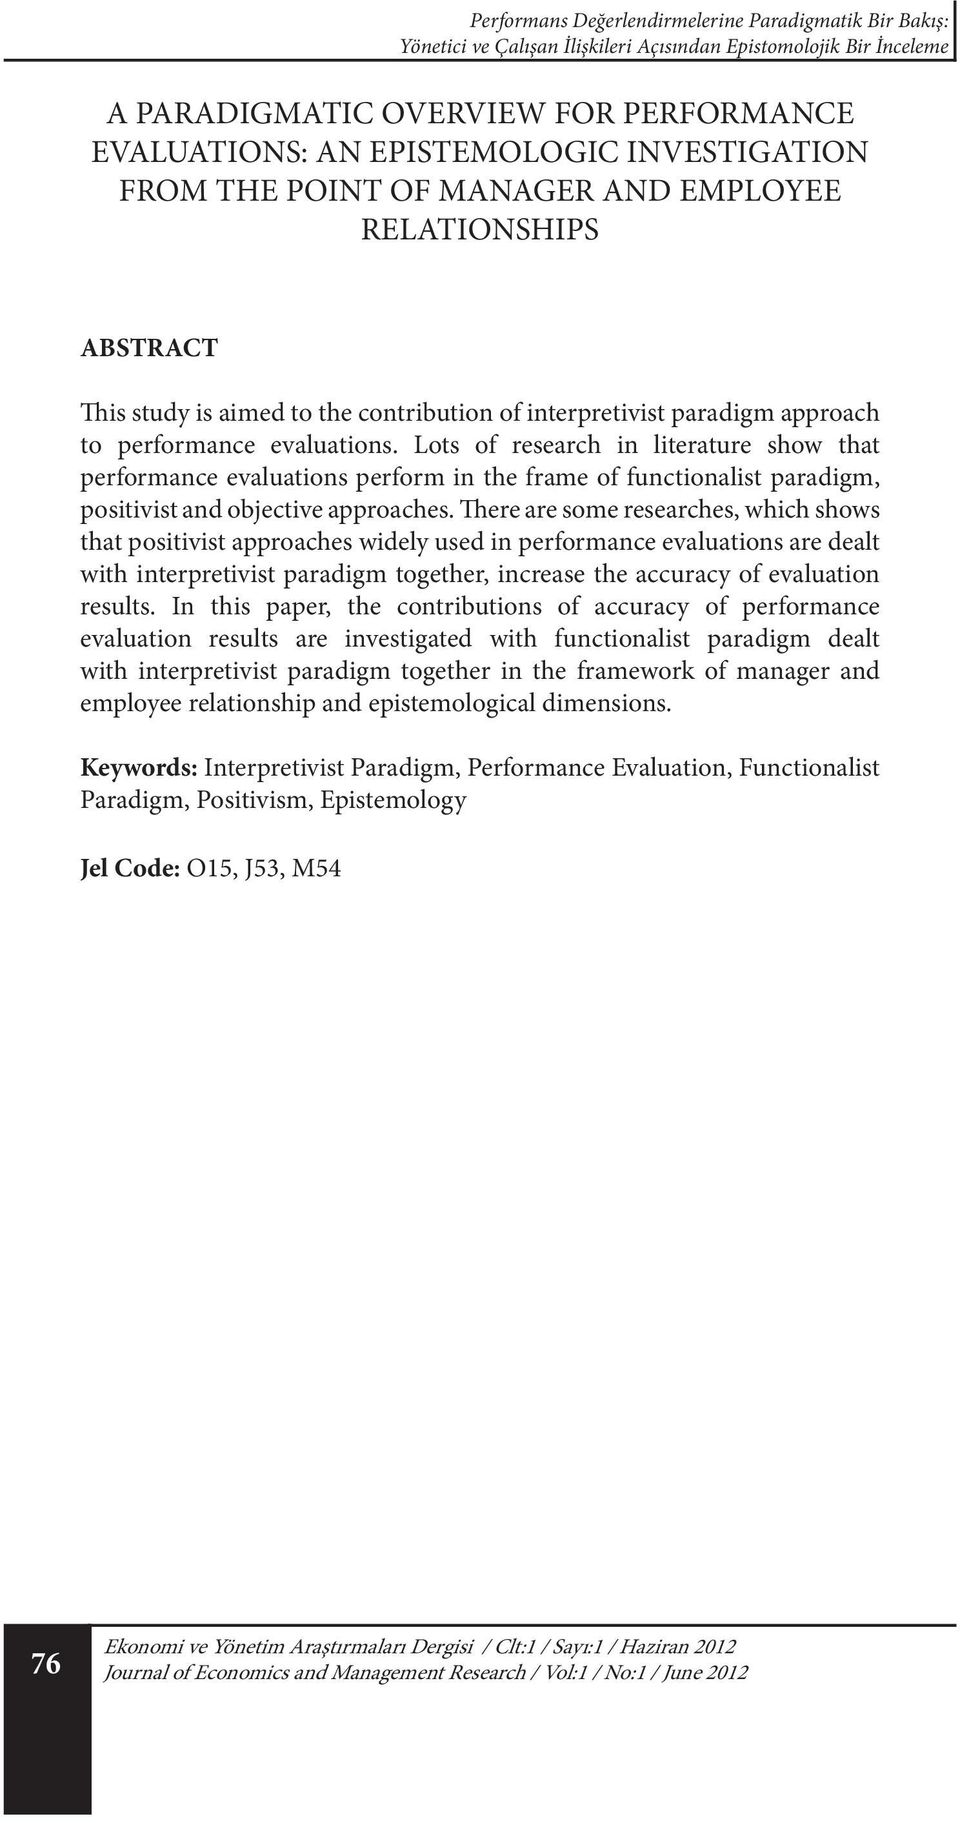 Lots of research in literature show that performance evaluations perform in the frame of functionalist paradigm, positivist and objective approaches.